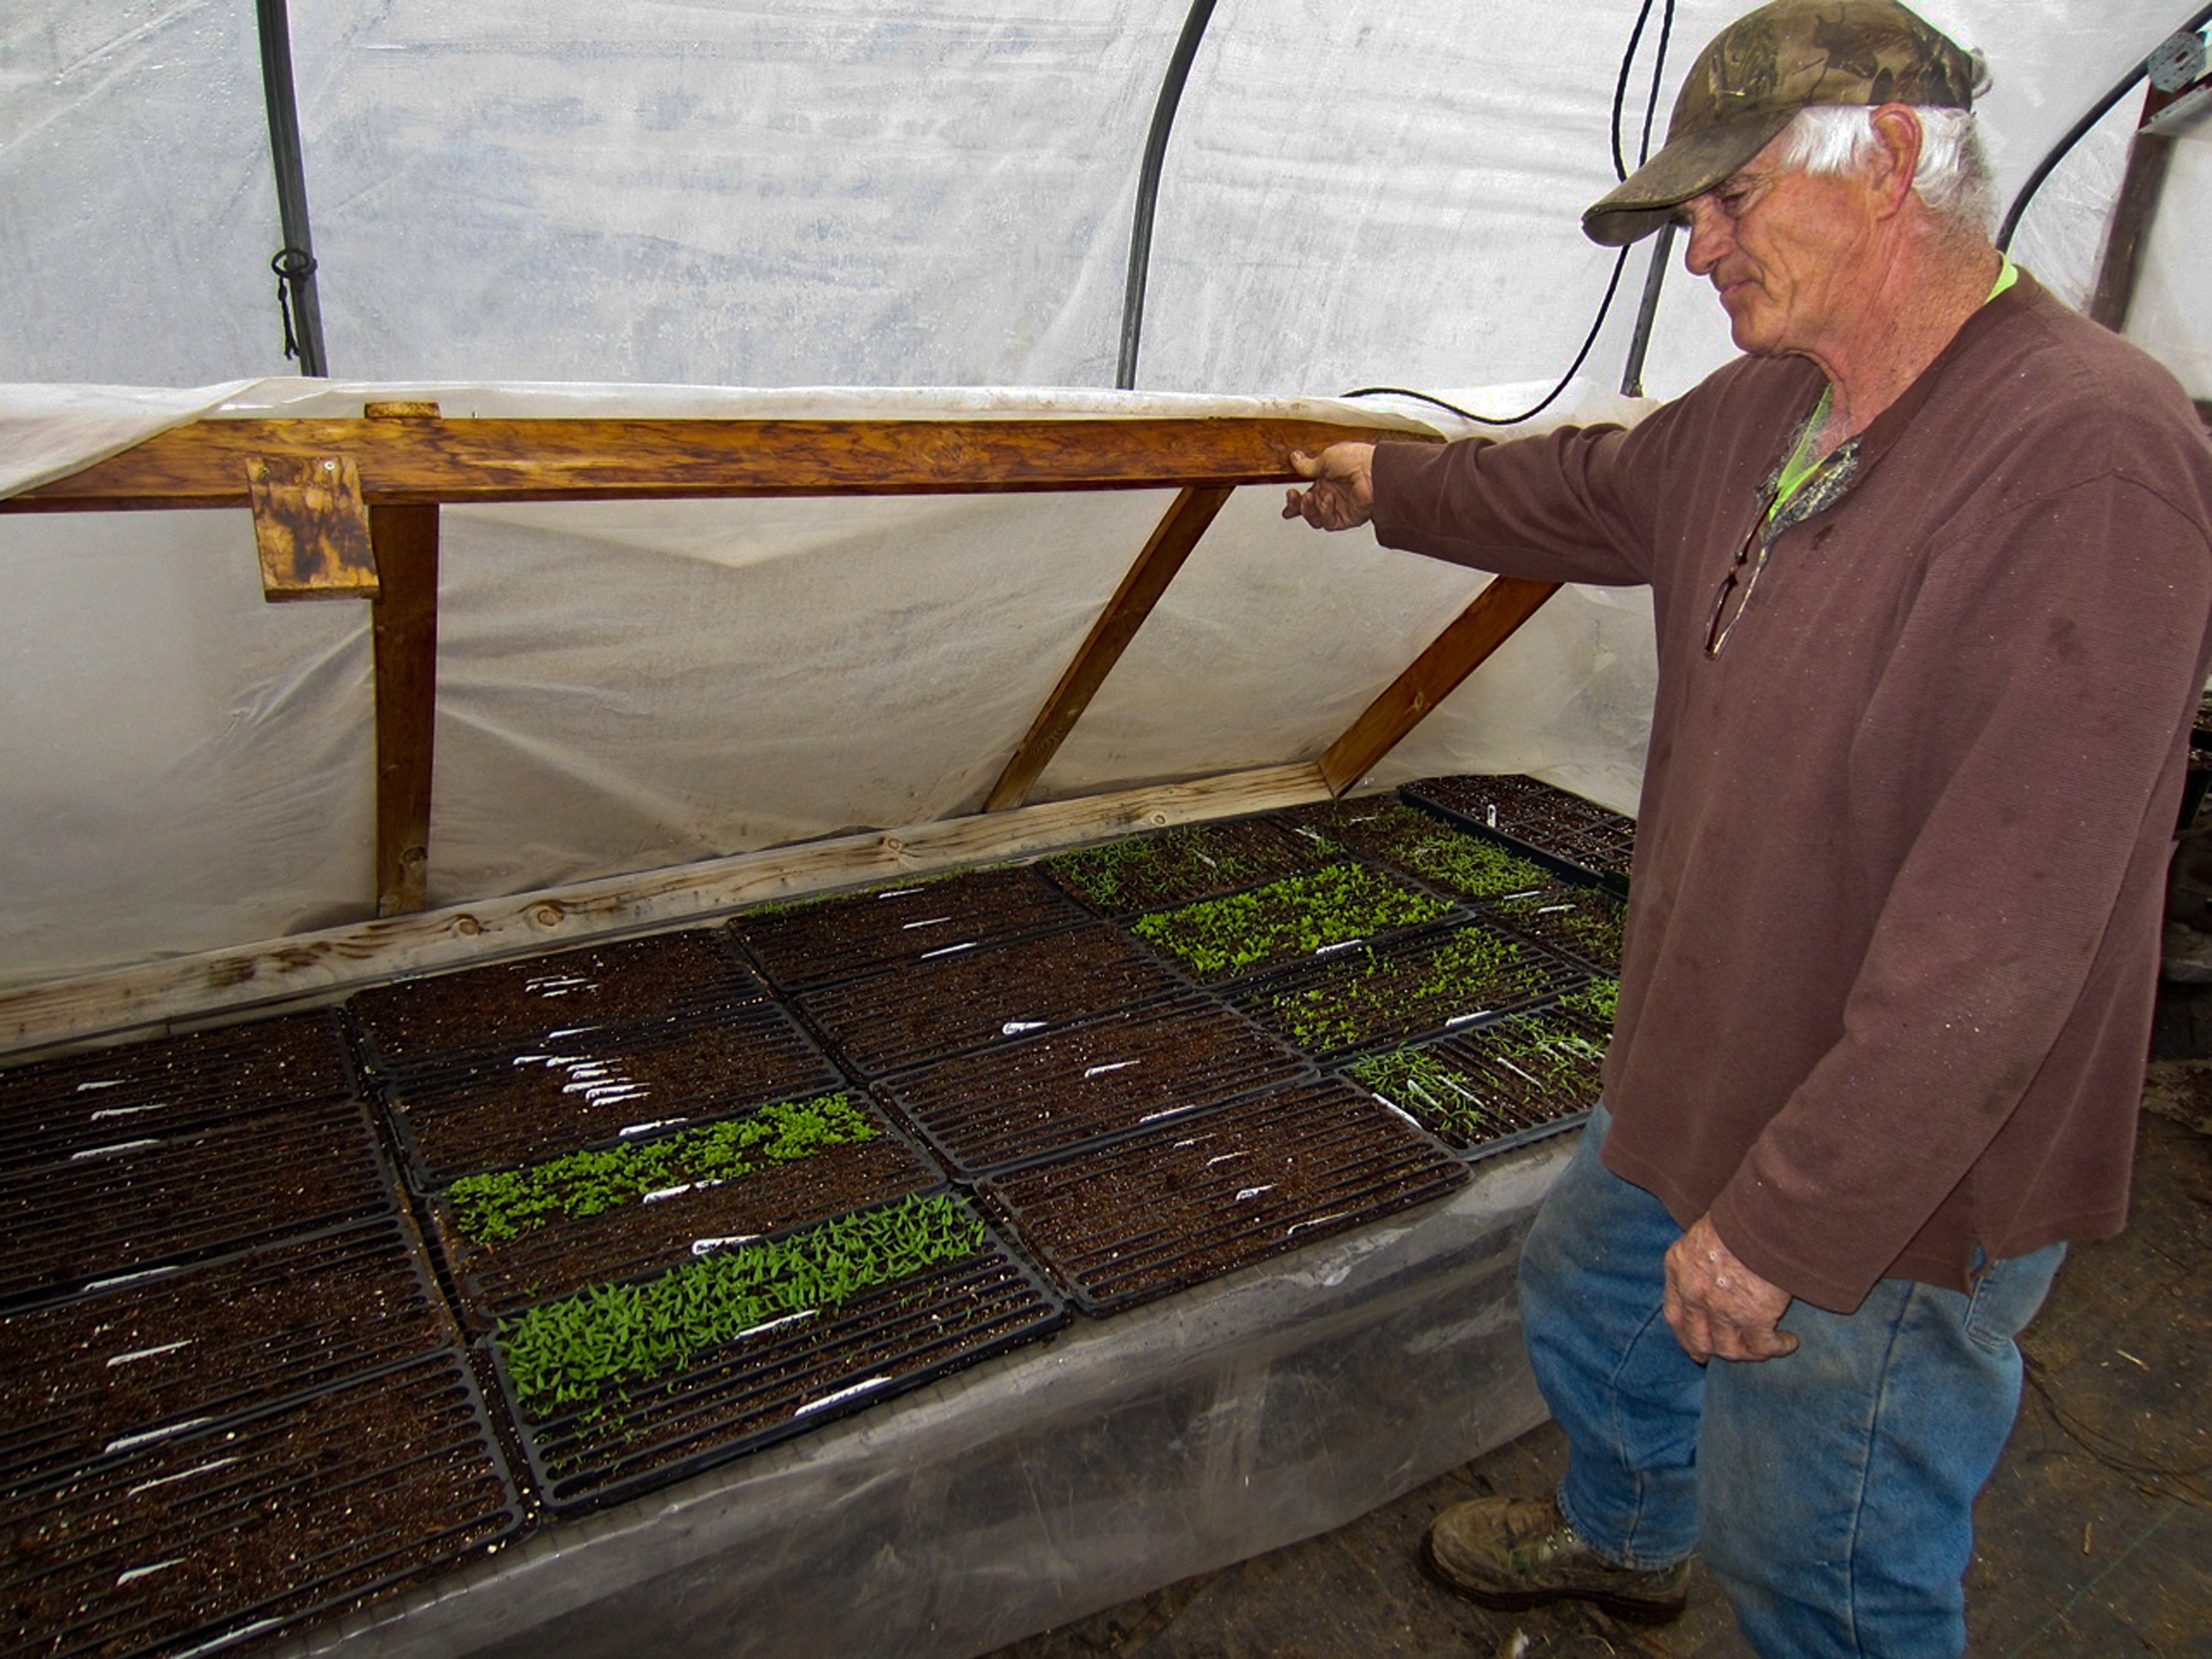 Germinating Seeds For the Planting Season